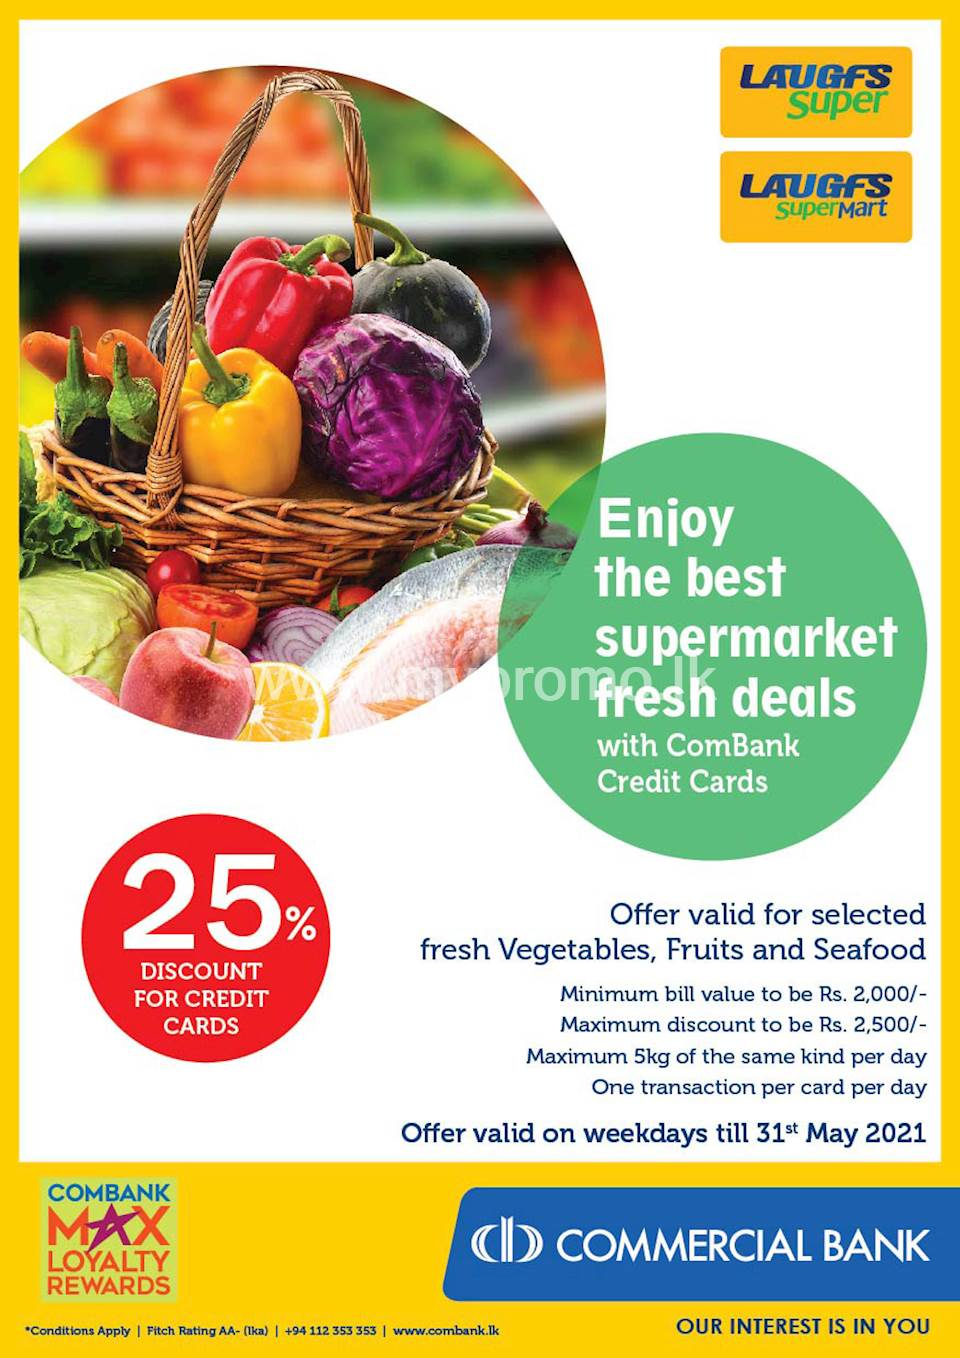 Enjoy 25% Discount with ComBank Credit Cards at LAUGFS Supermarket